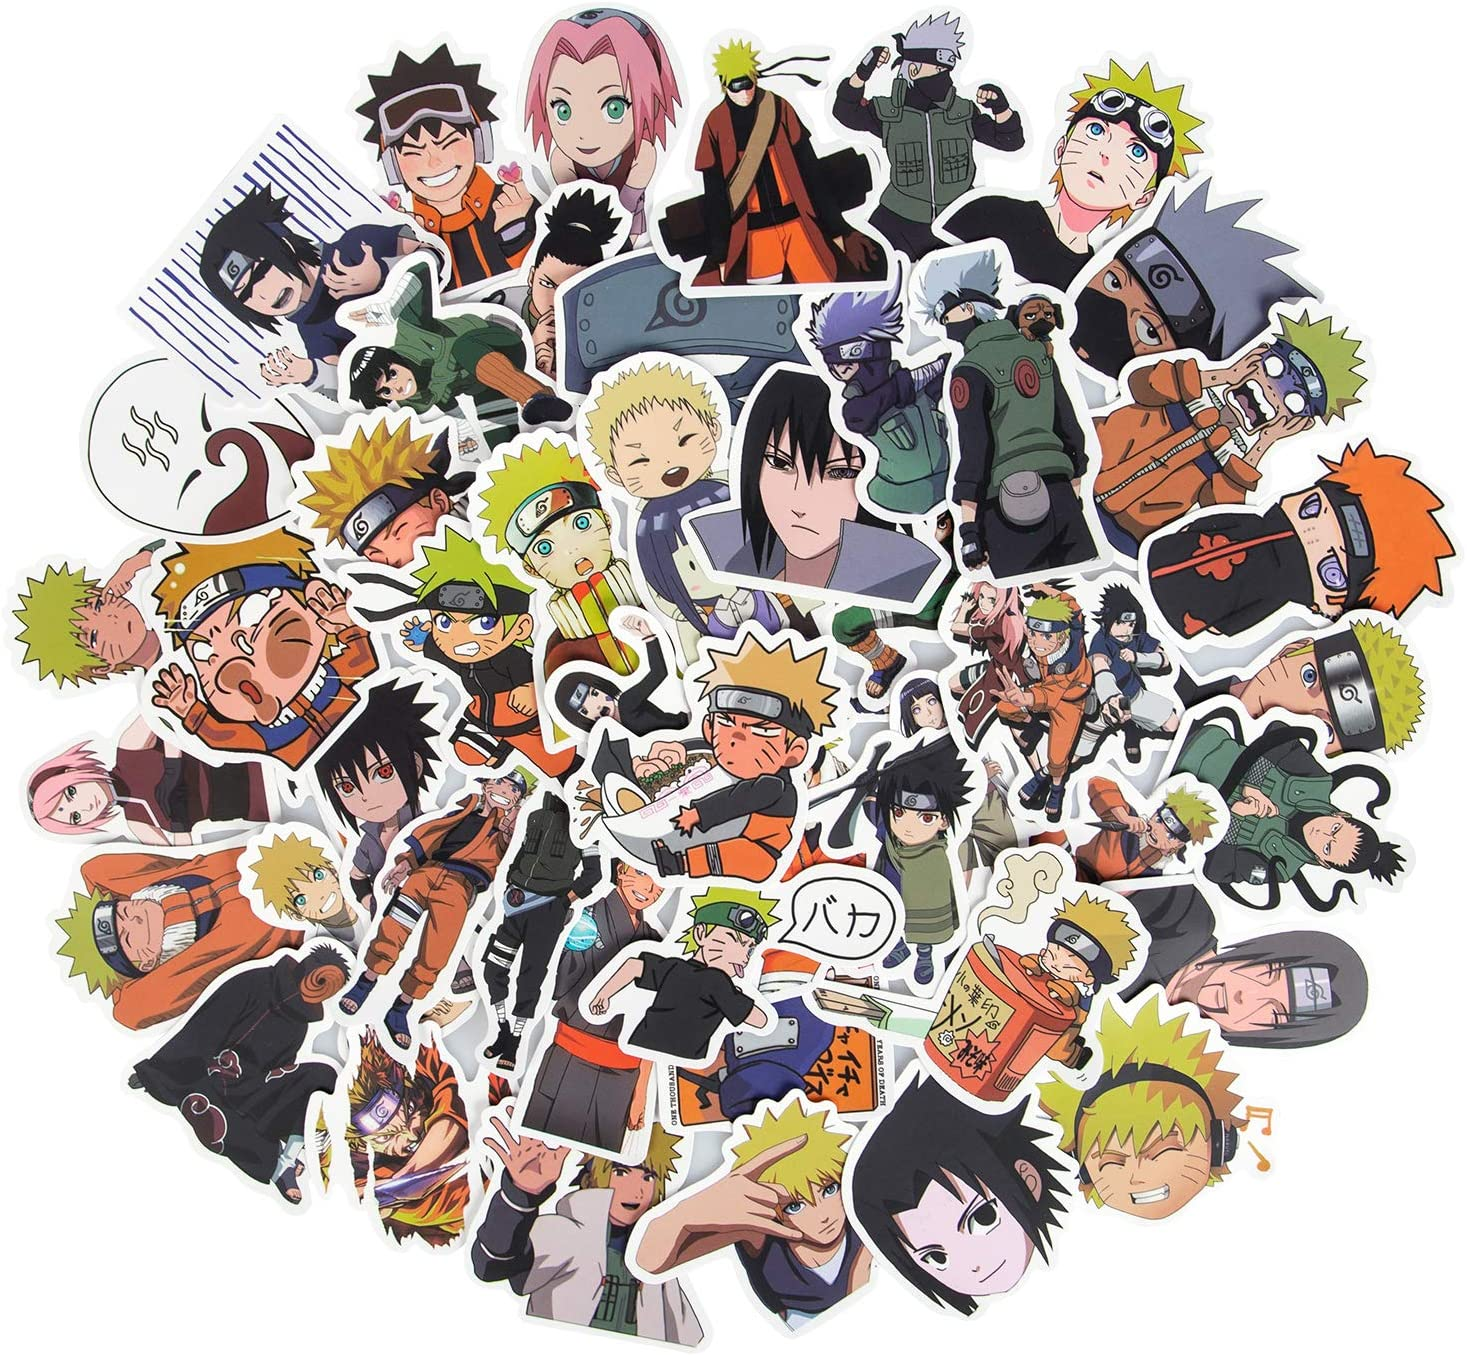 Naruto Stickers for Laptop, 50 Pack Cute Waterproof Anime Stickers for Teens and Fans Gifts, Vinyl Skateboard Stickers for Hydroflasks Water Bottles Bumper Cup Computer Guitar